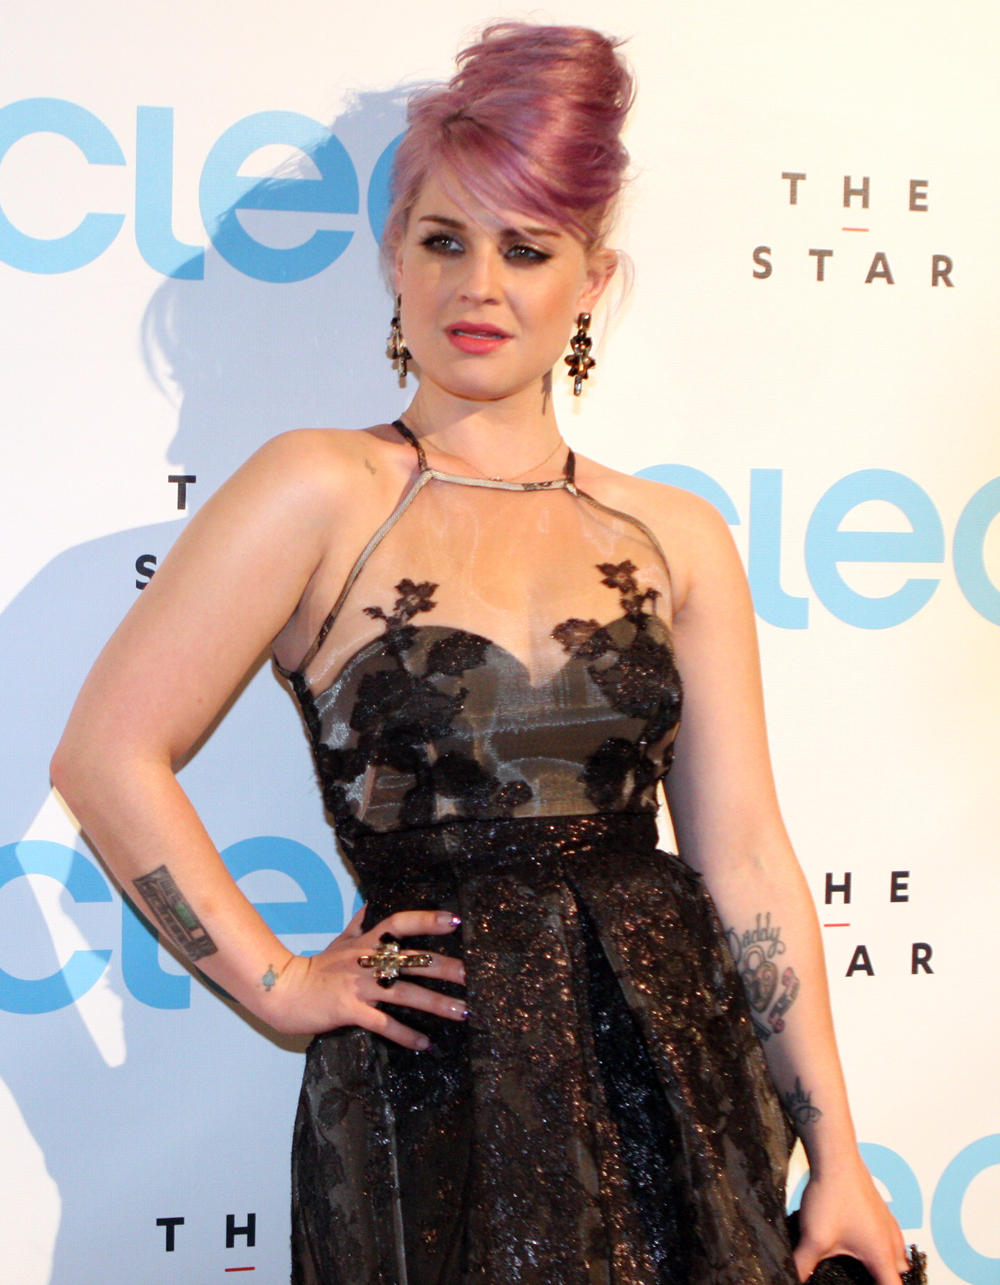 Kelly Osbourne has lost weight because of drugs 10/20/2009 56